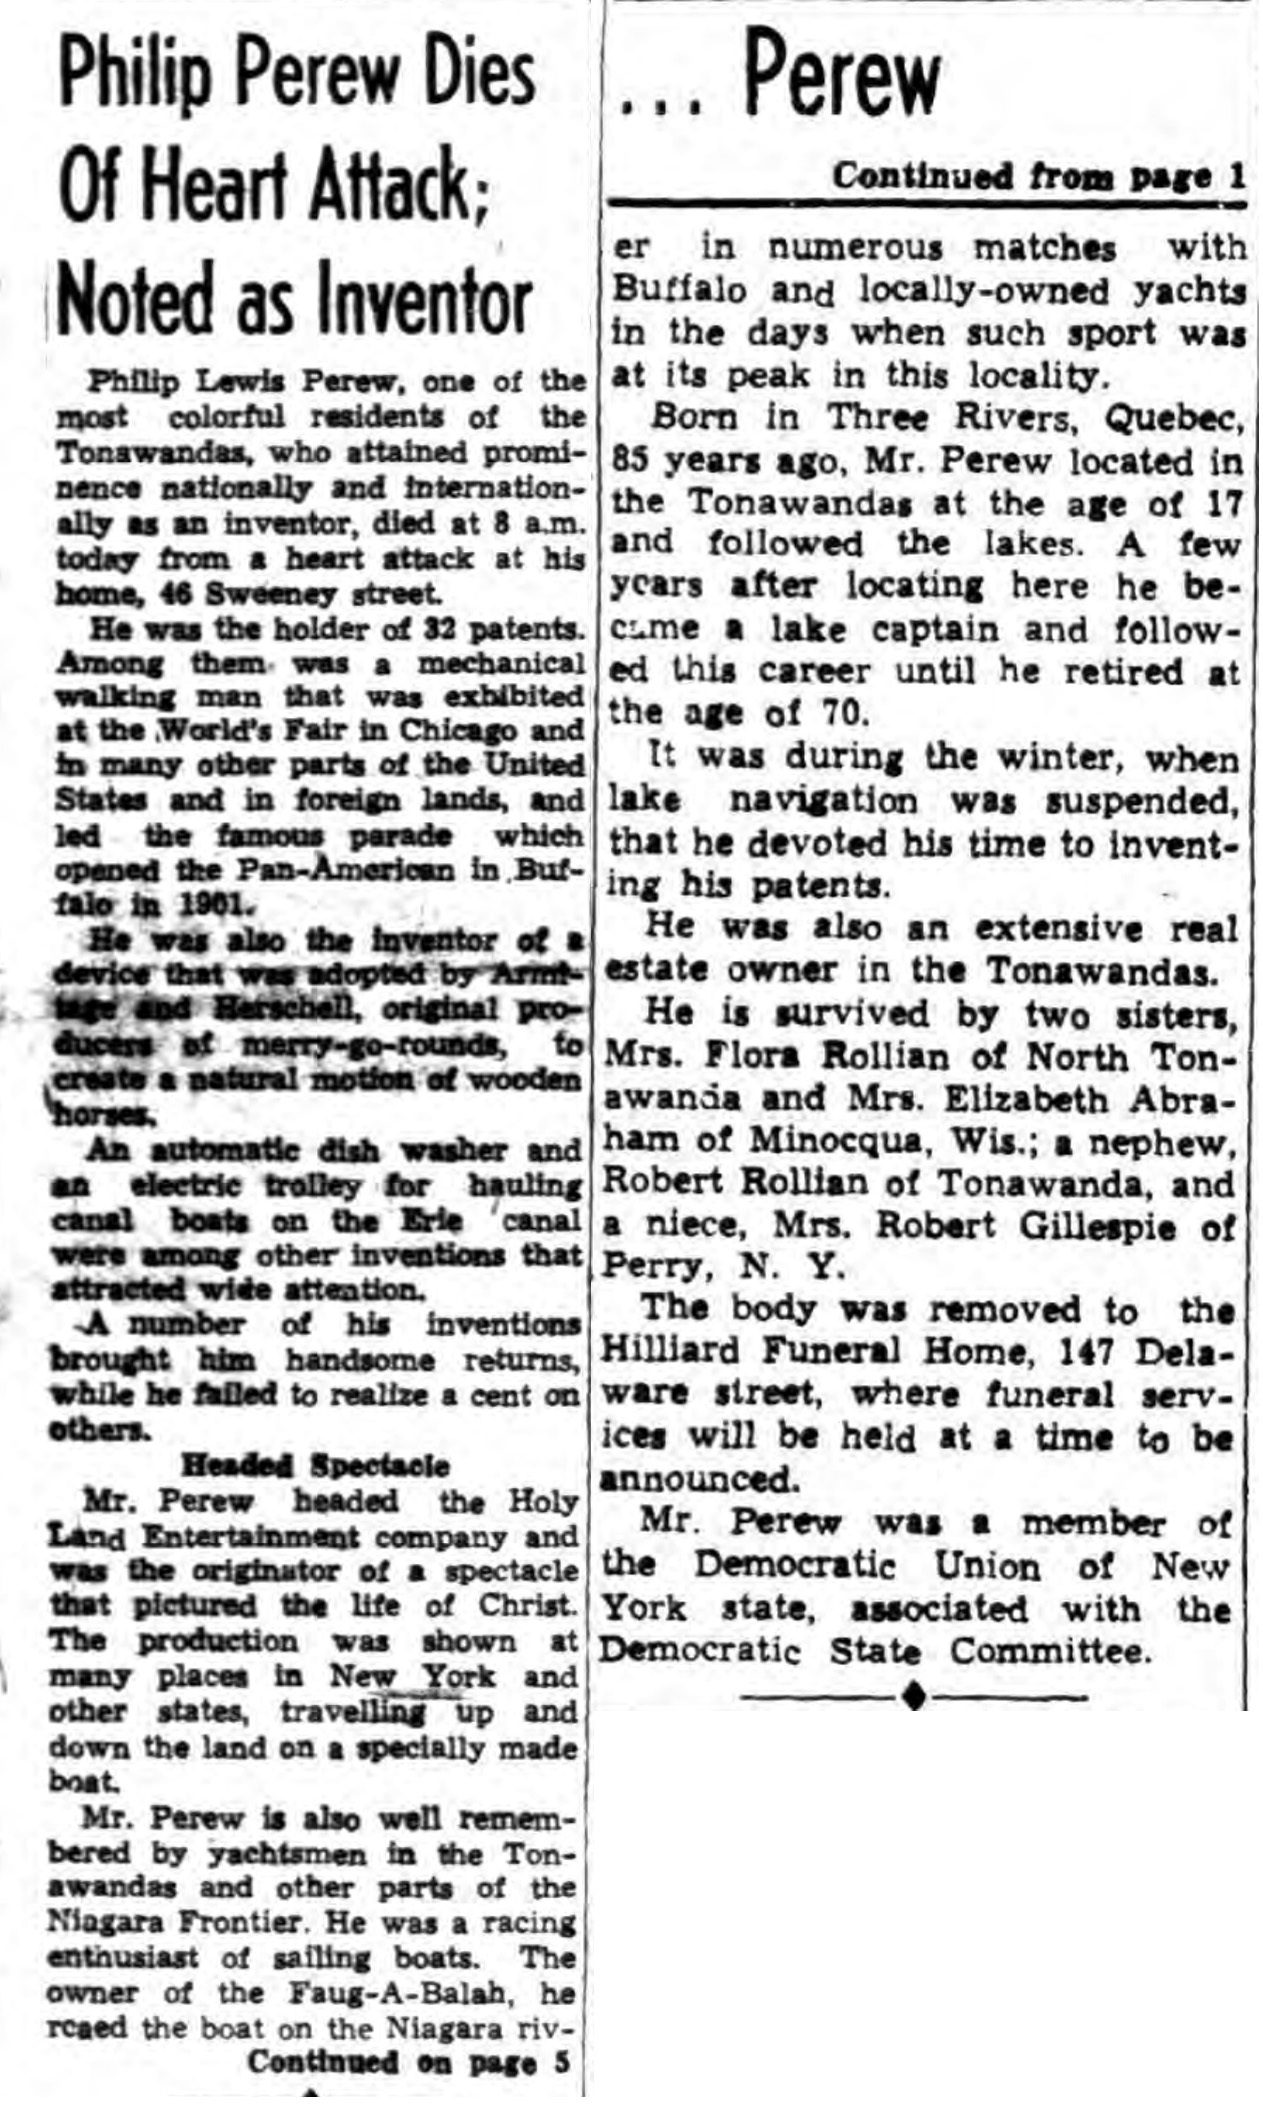 Philip Perew Dies of Heart Attack, obit (Tonawanda News, 1946-12-07).jpg